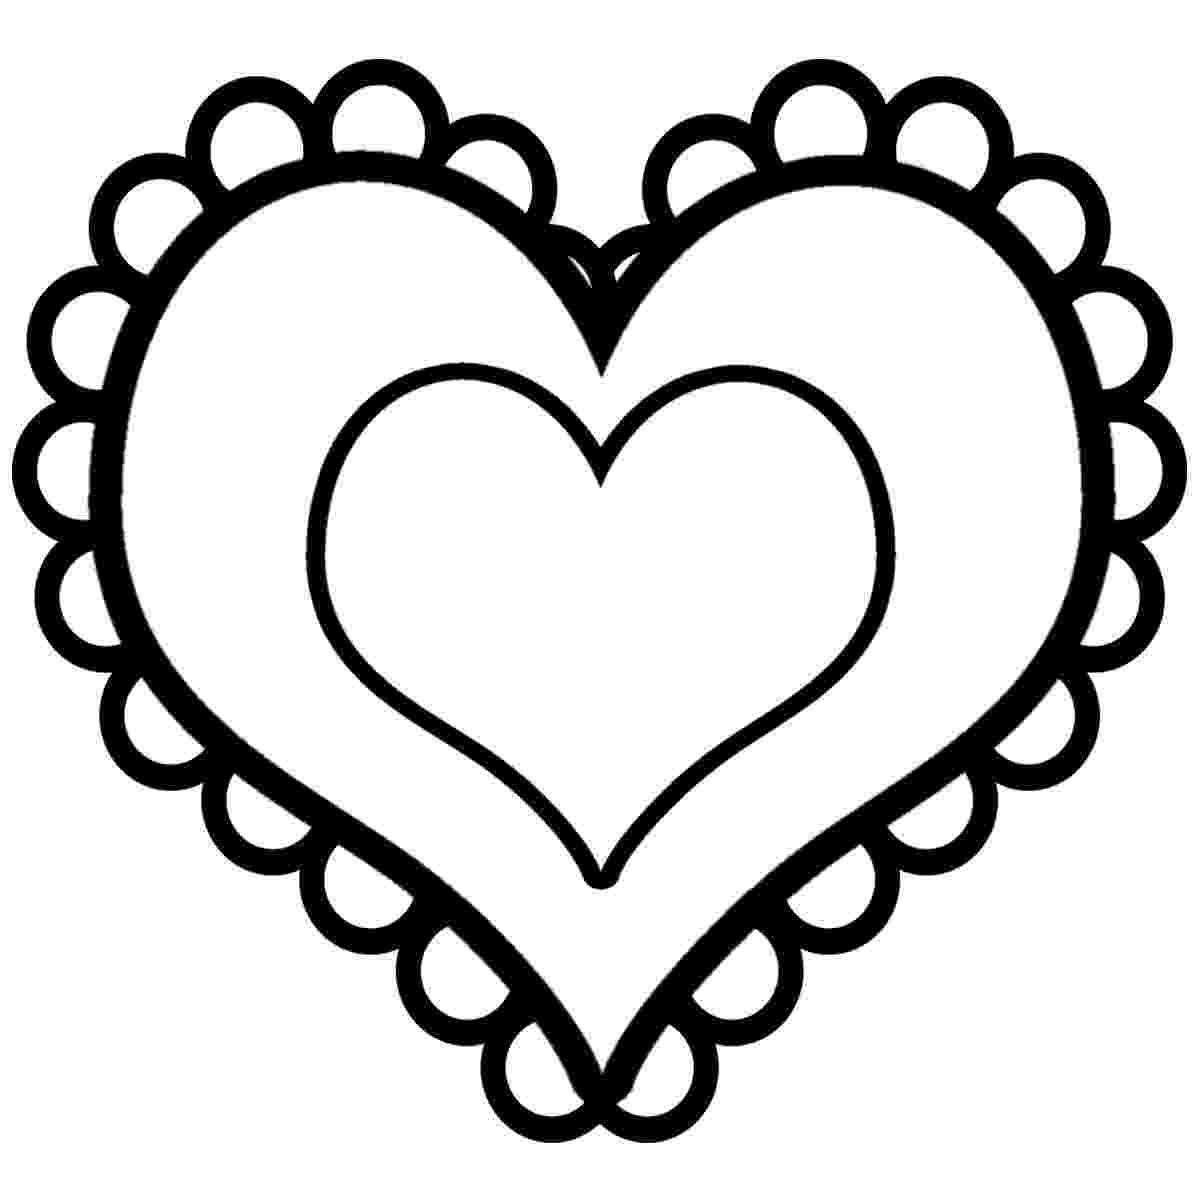 picture of a heart to color free printable heart coloring pages for kids picture a of heart to color